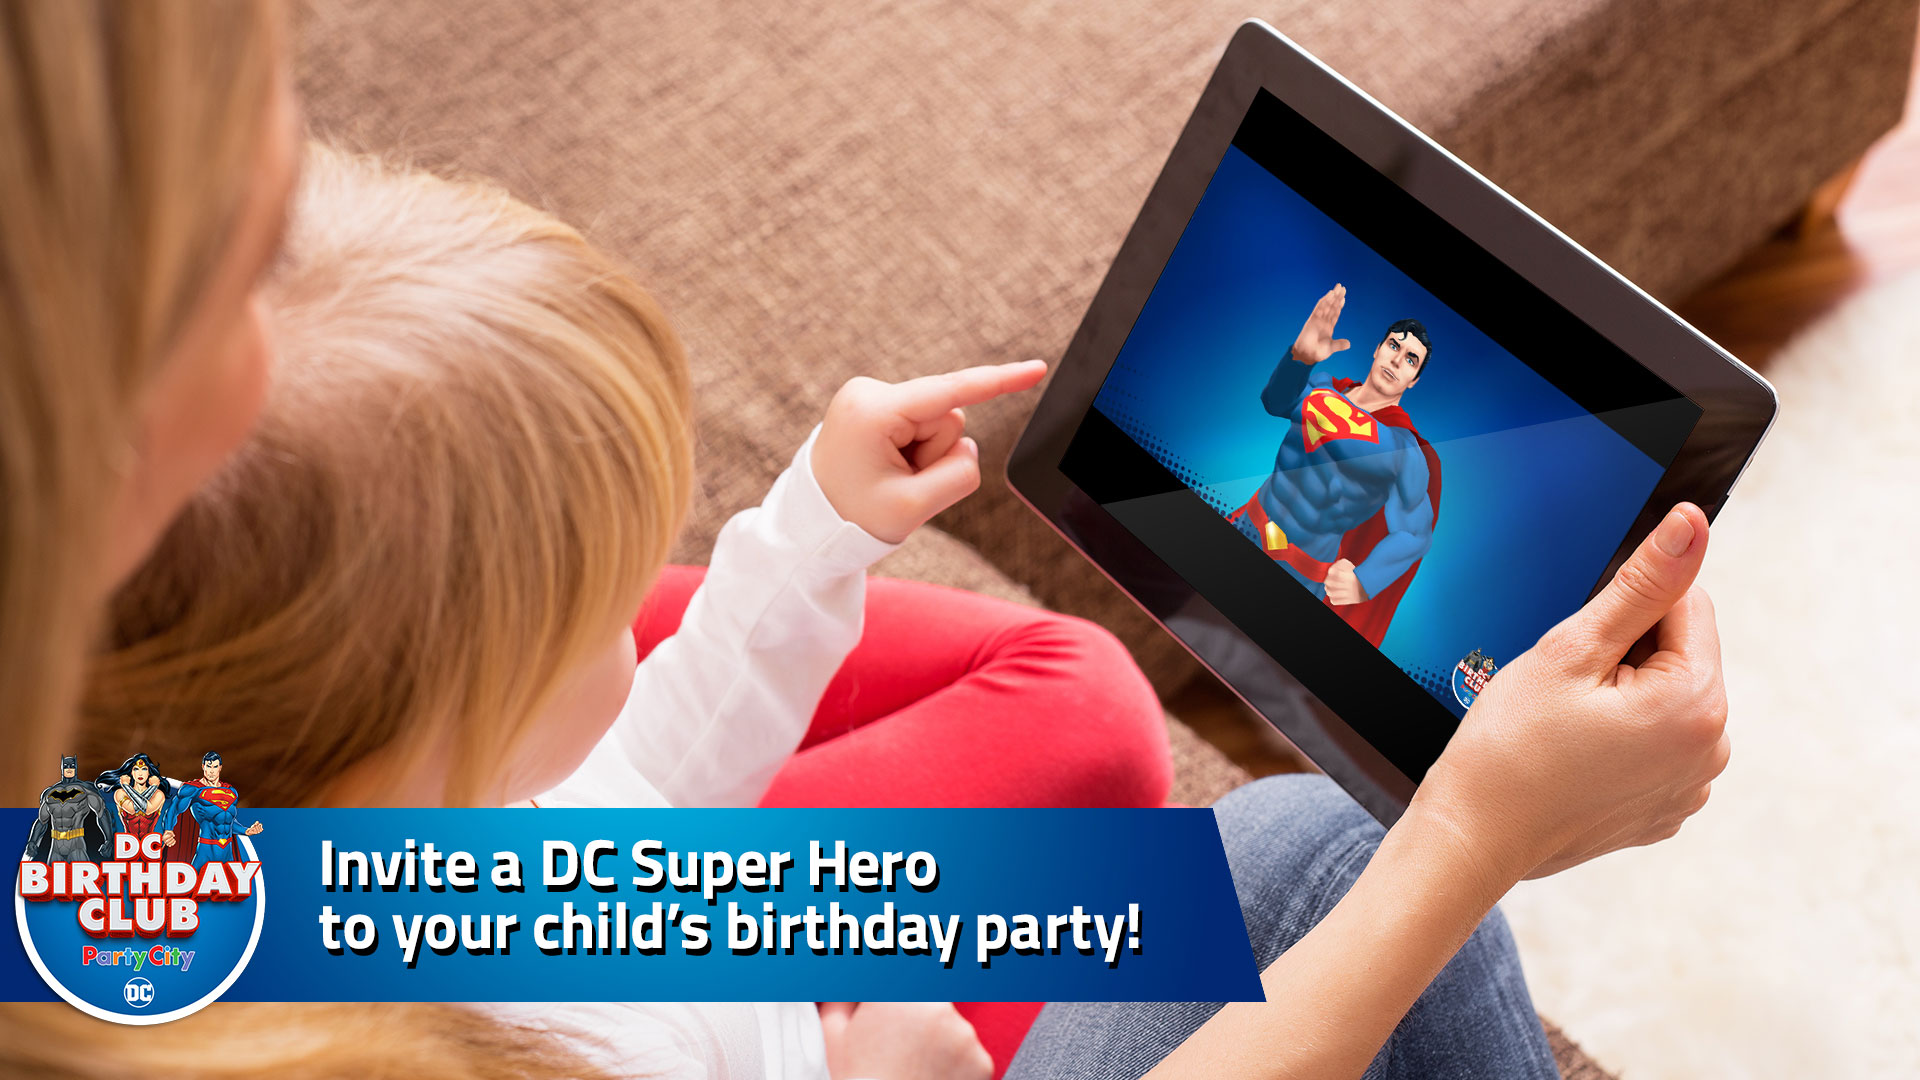 Invite a DC Super Hero to your child's birthday party!